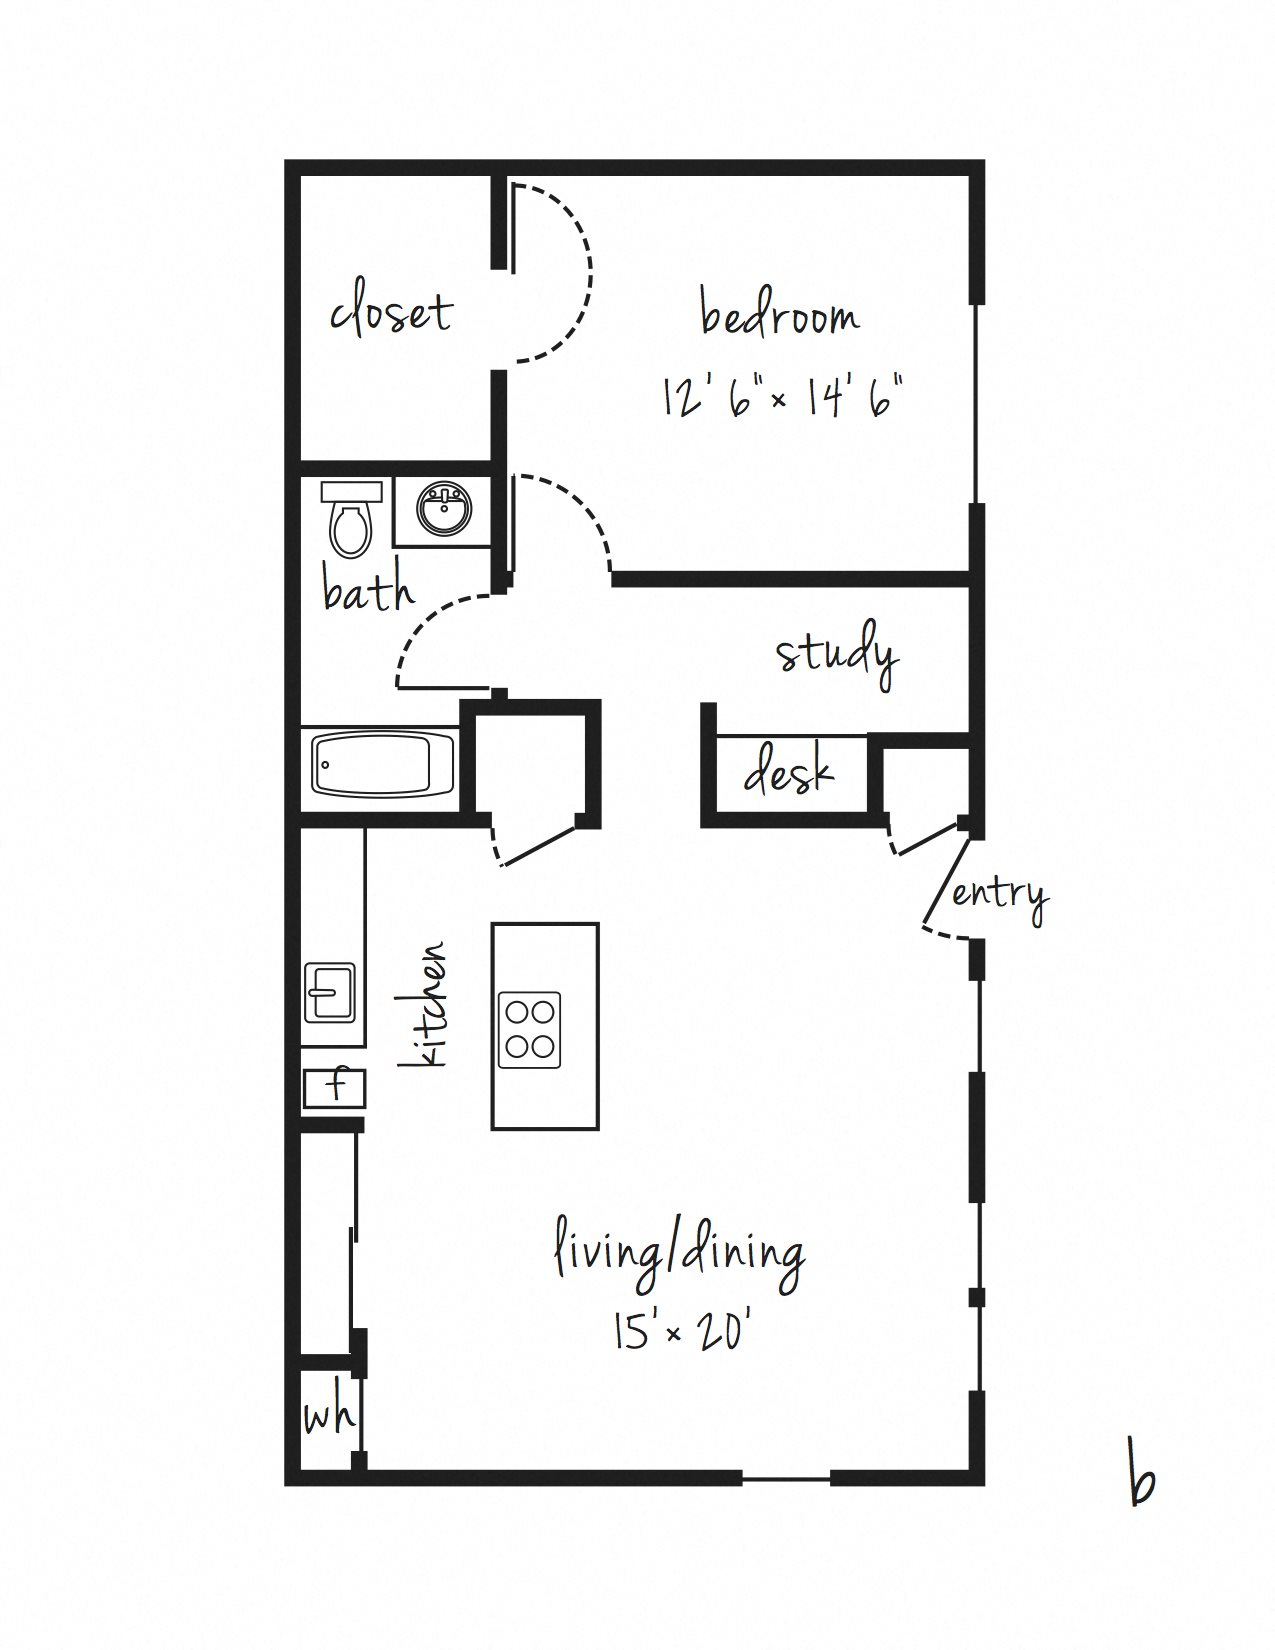 1x1 with Study Updated Floor Plan 5